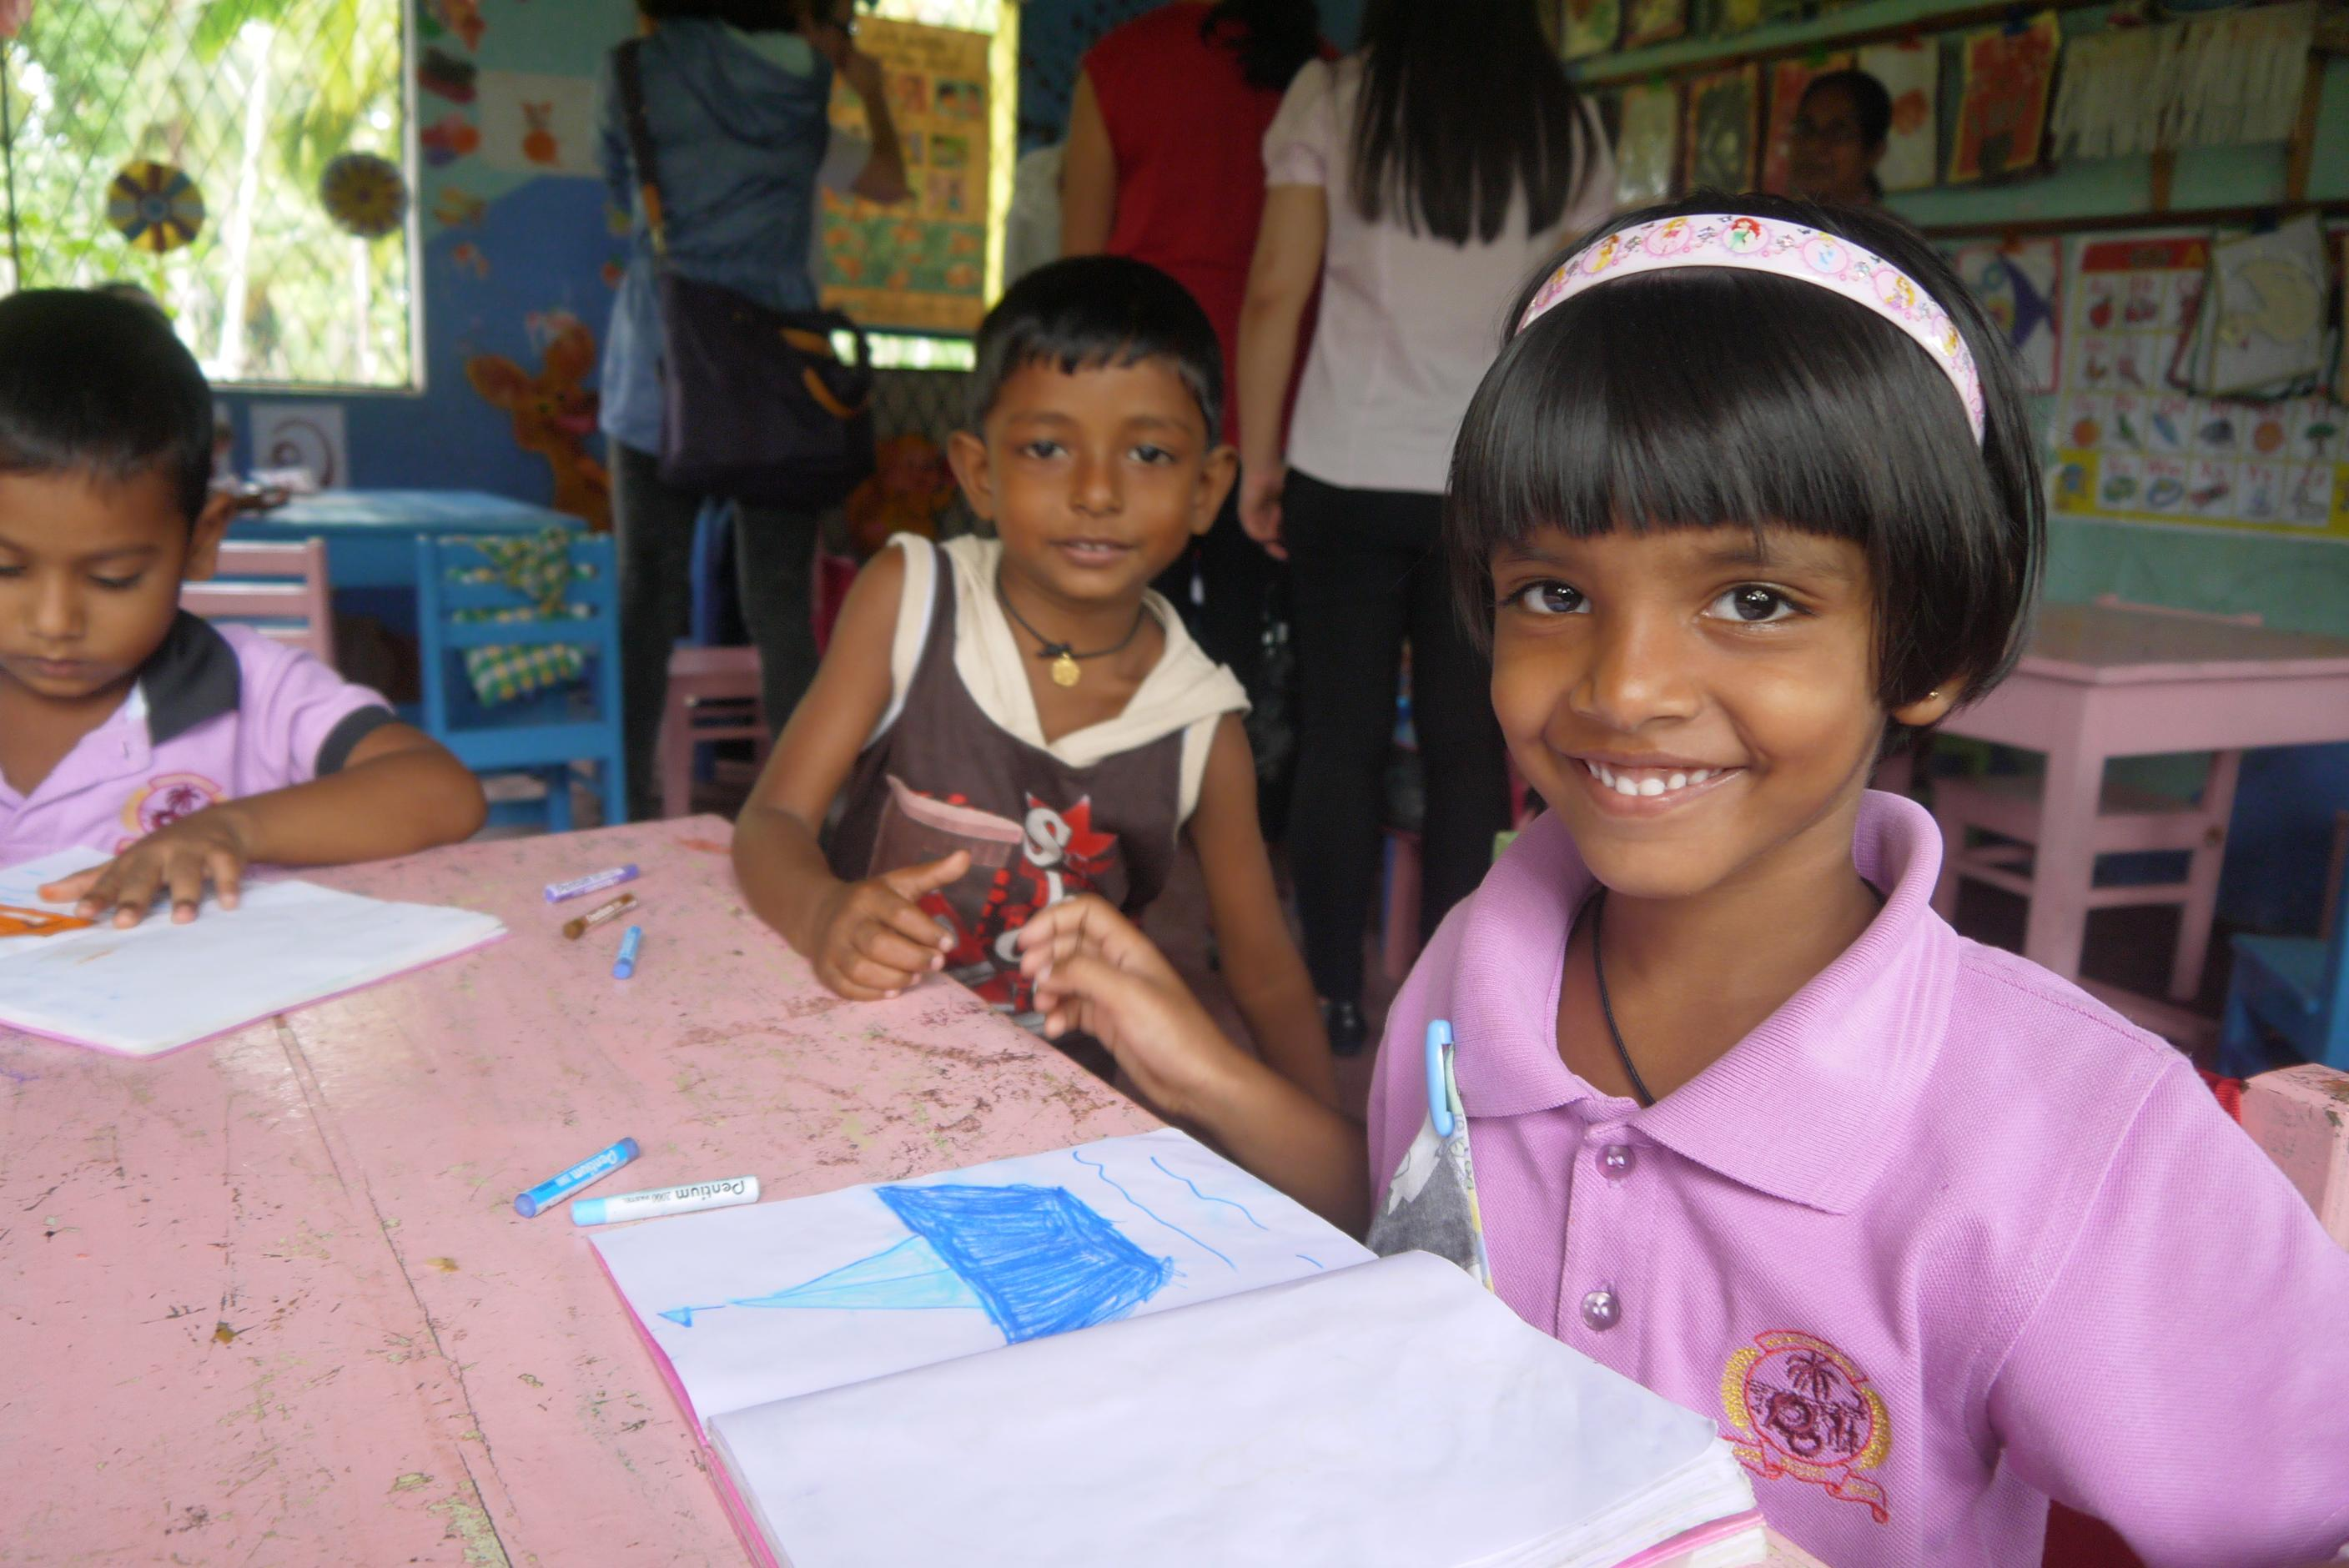 Children smile at the camera while doing their homework at our volunteer teaching placements in Sri Lanka